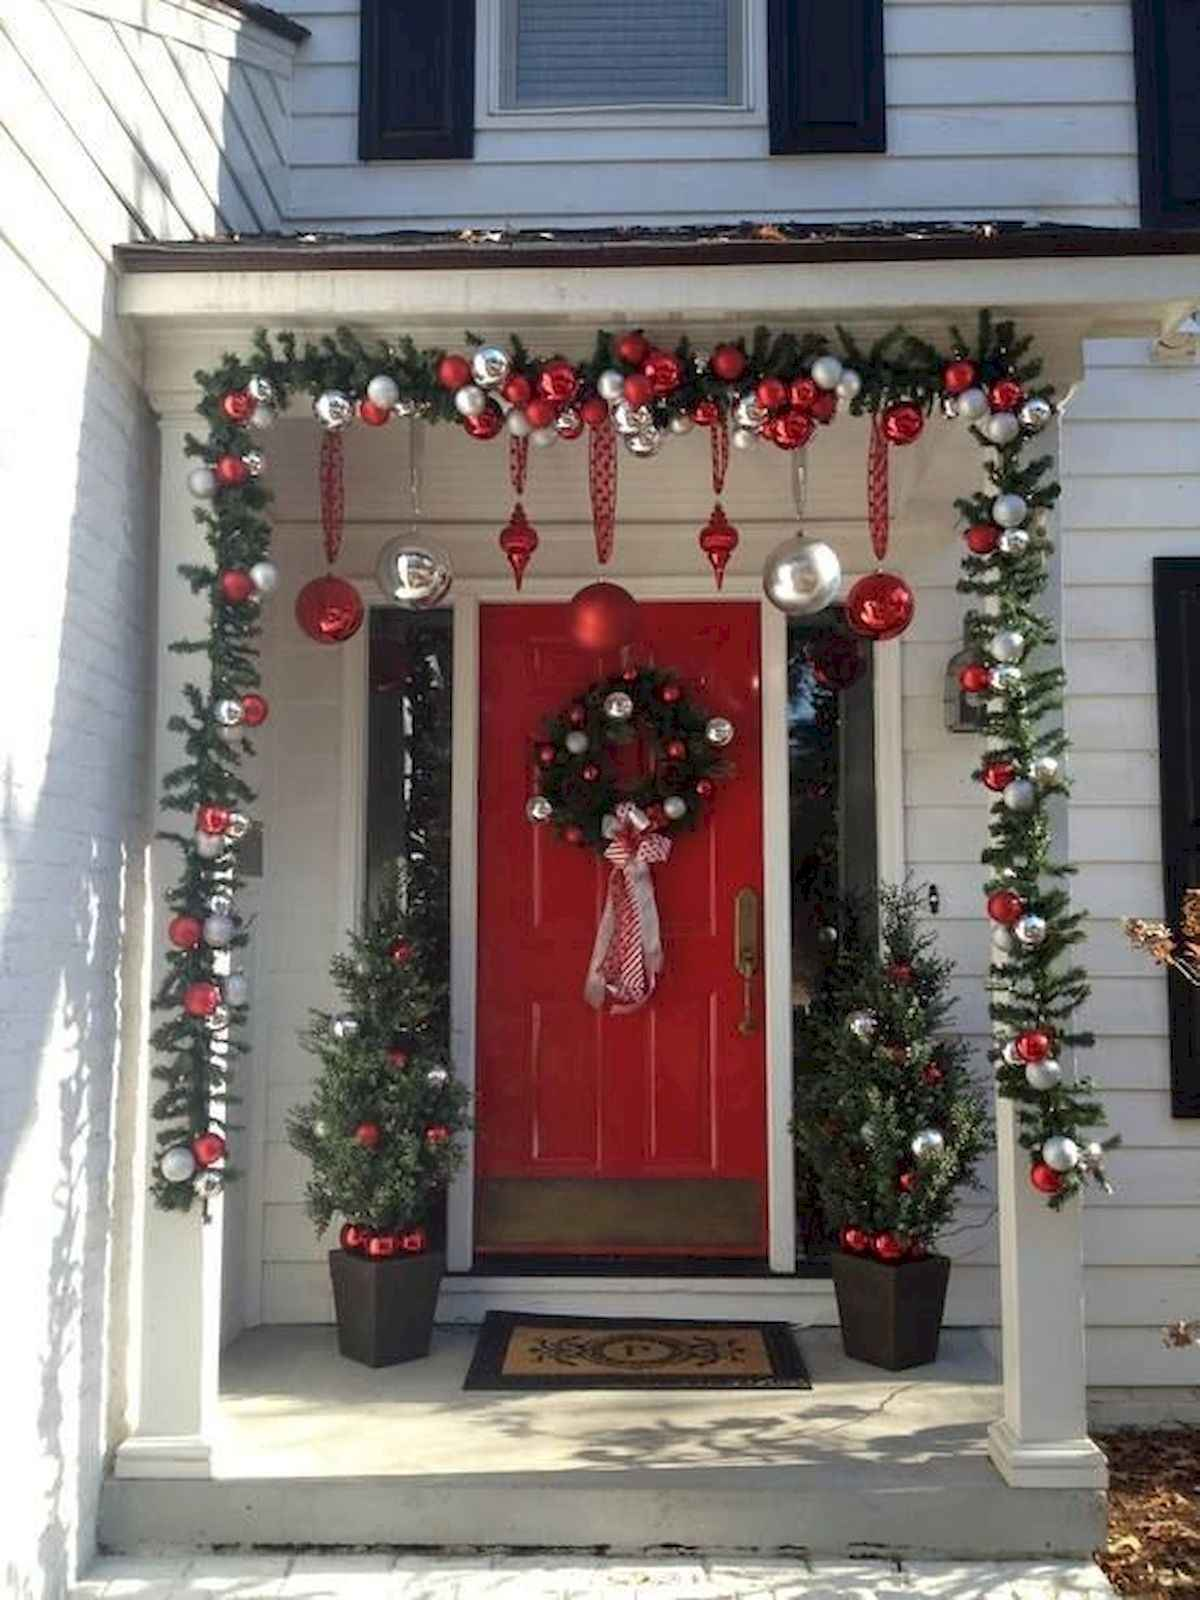 50 stunning front porch christmas lights decorations ideas (44)